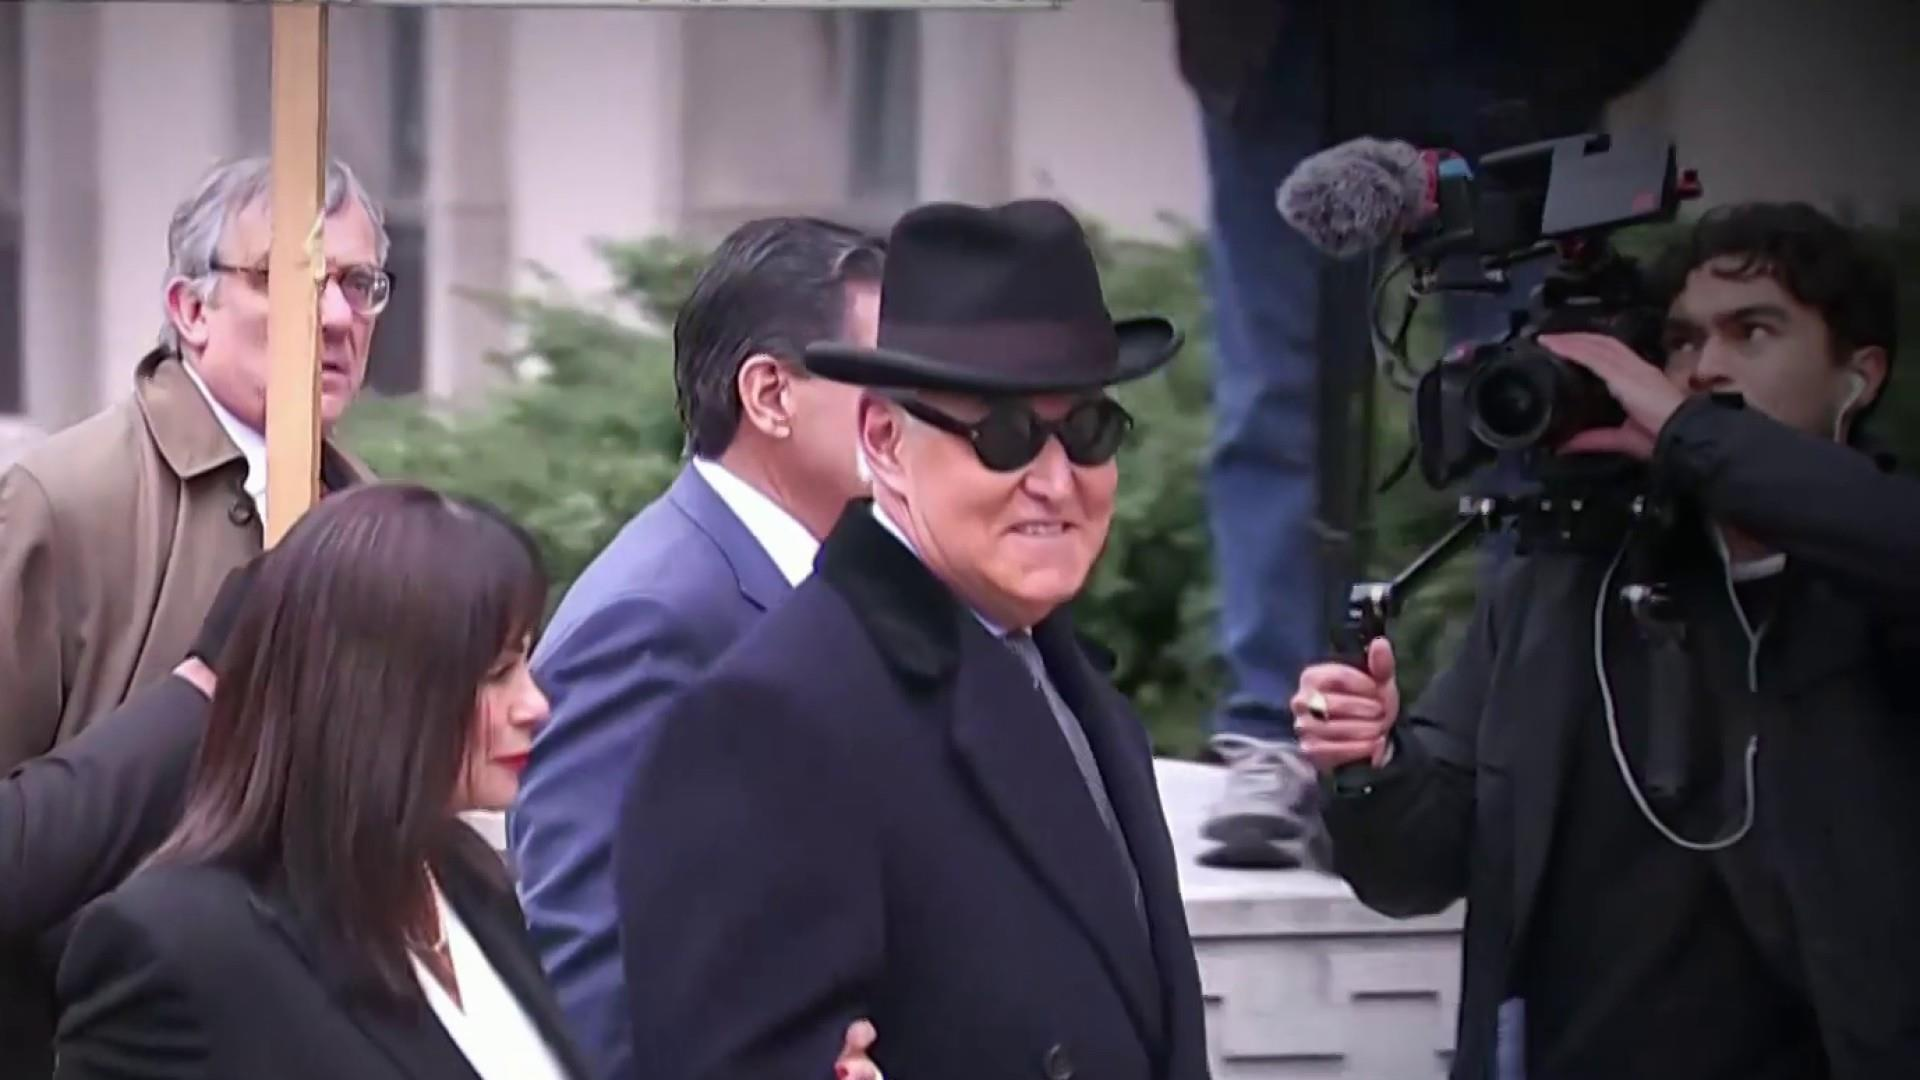 Trump associate Roger Stone sentenced to 3 years, 4 months in prison for lying to Congress